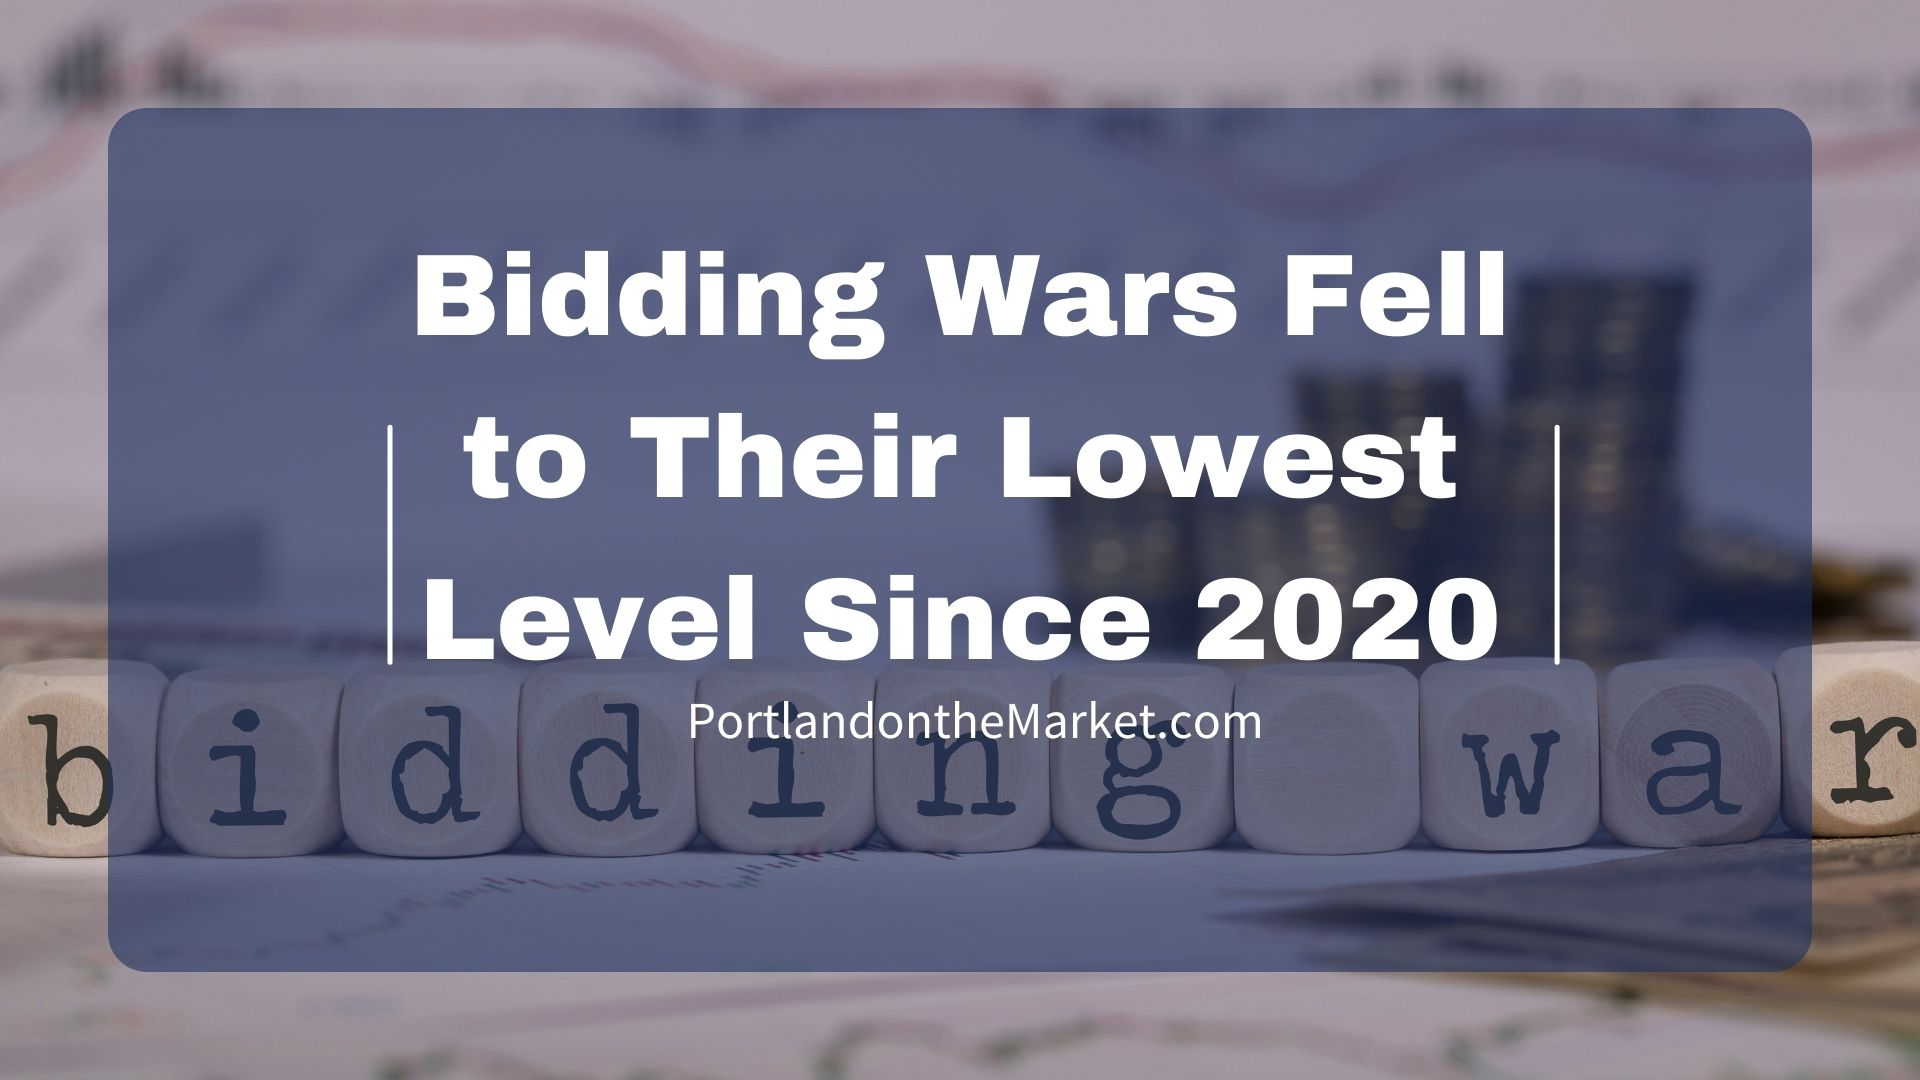 Bidding Wars Fell to Their Lowest Level Since 2020